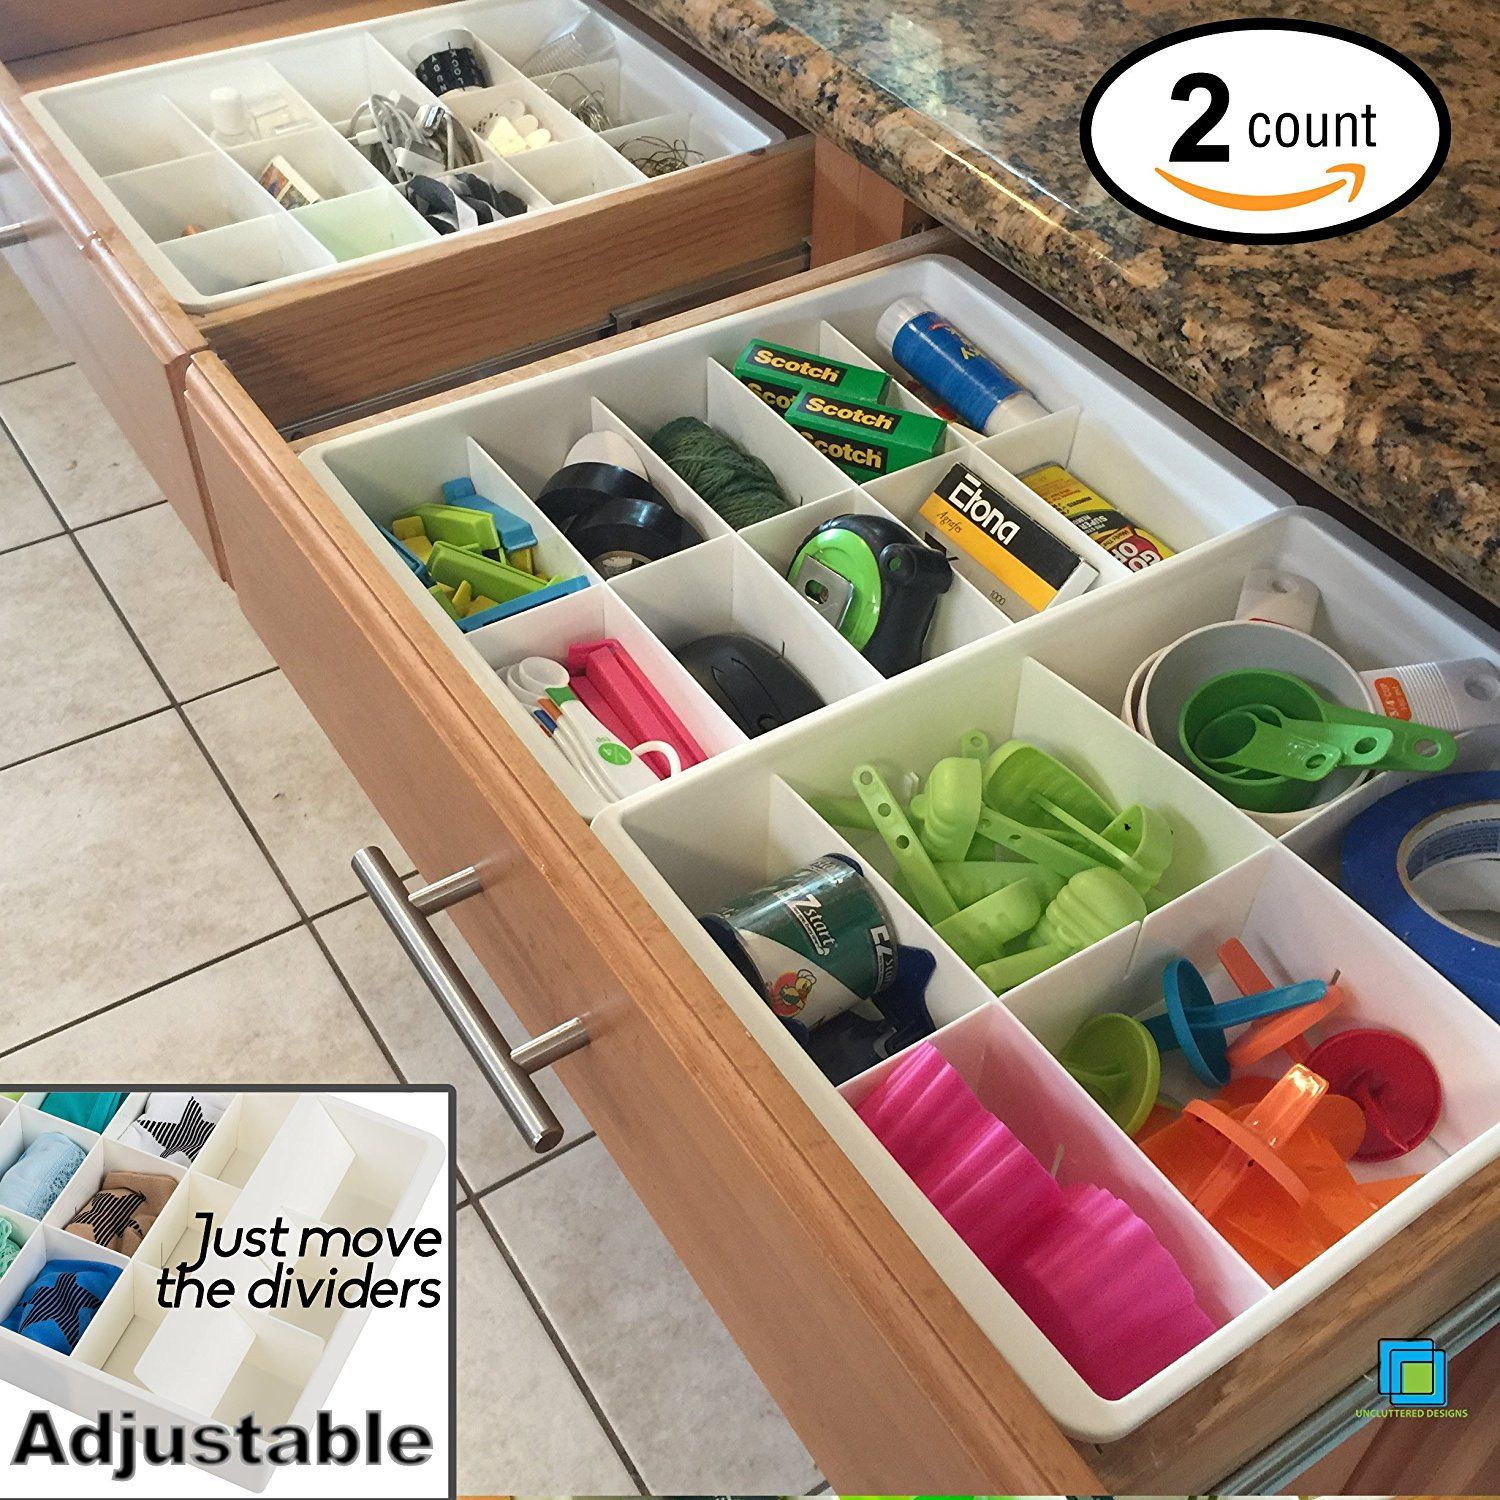 Free 2 Day Shipping Buy Adjustable Drawer Dividers For Utility